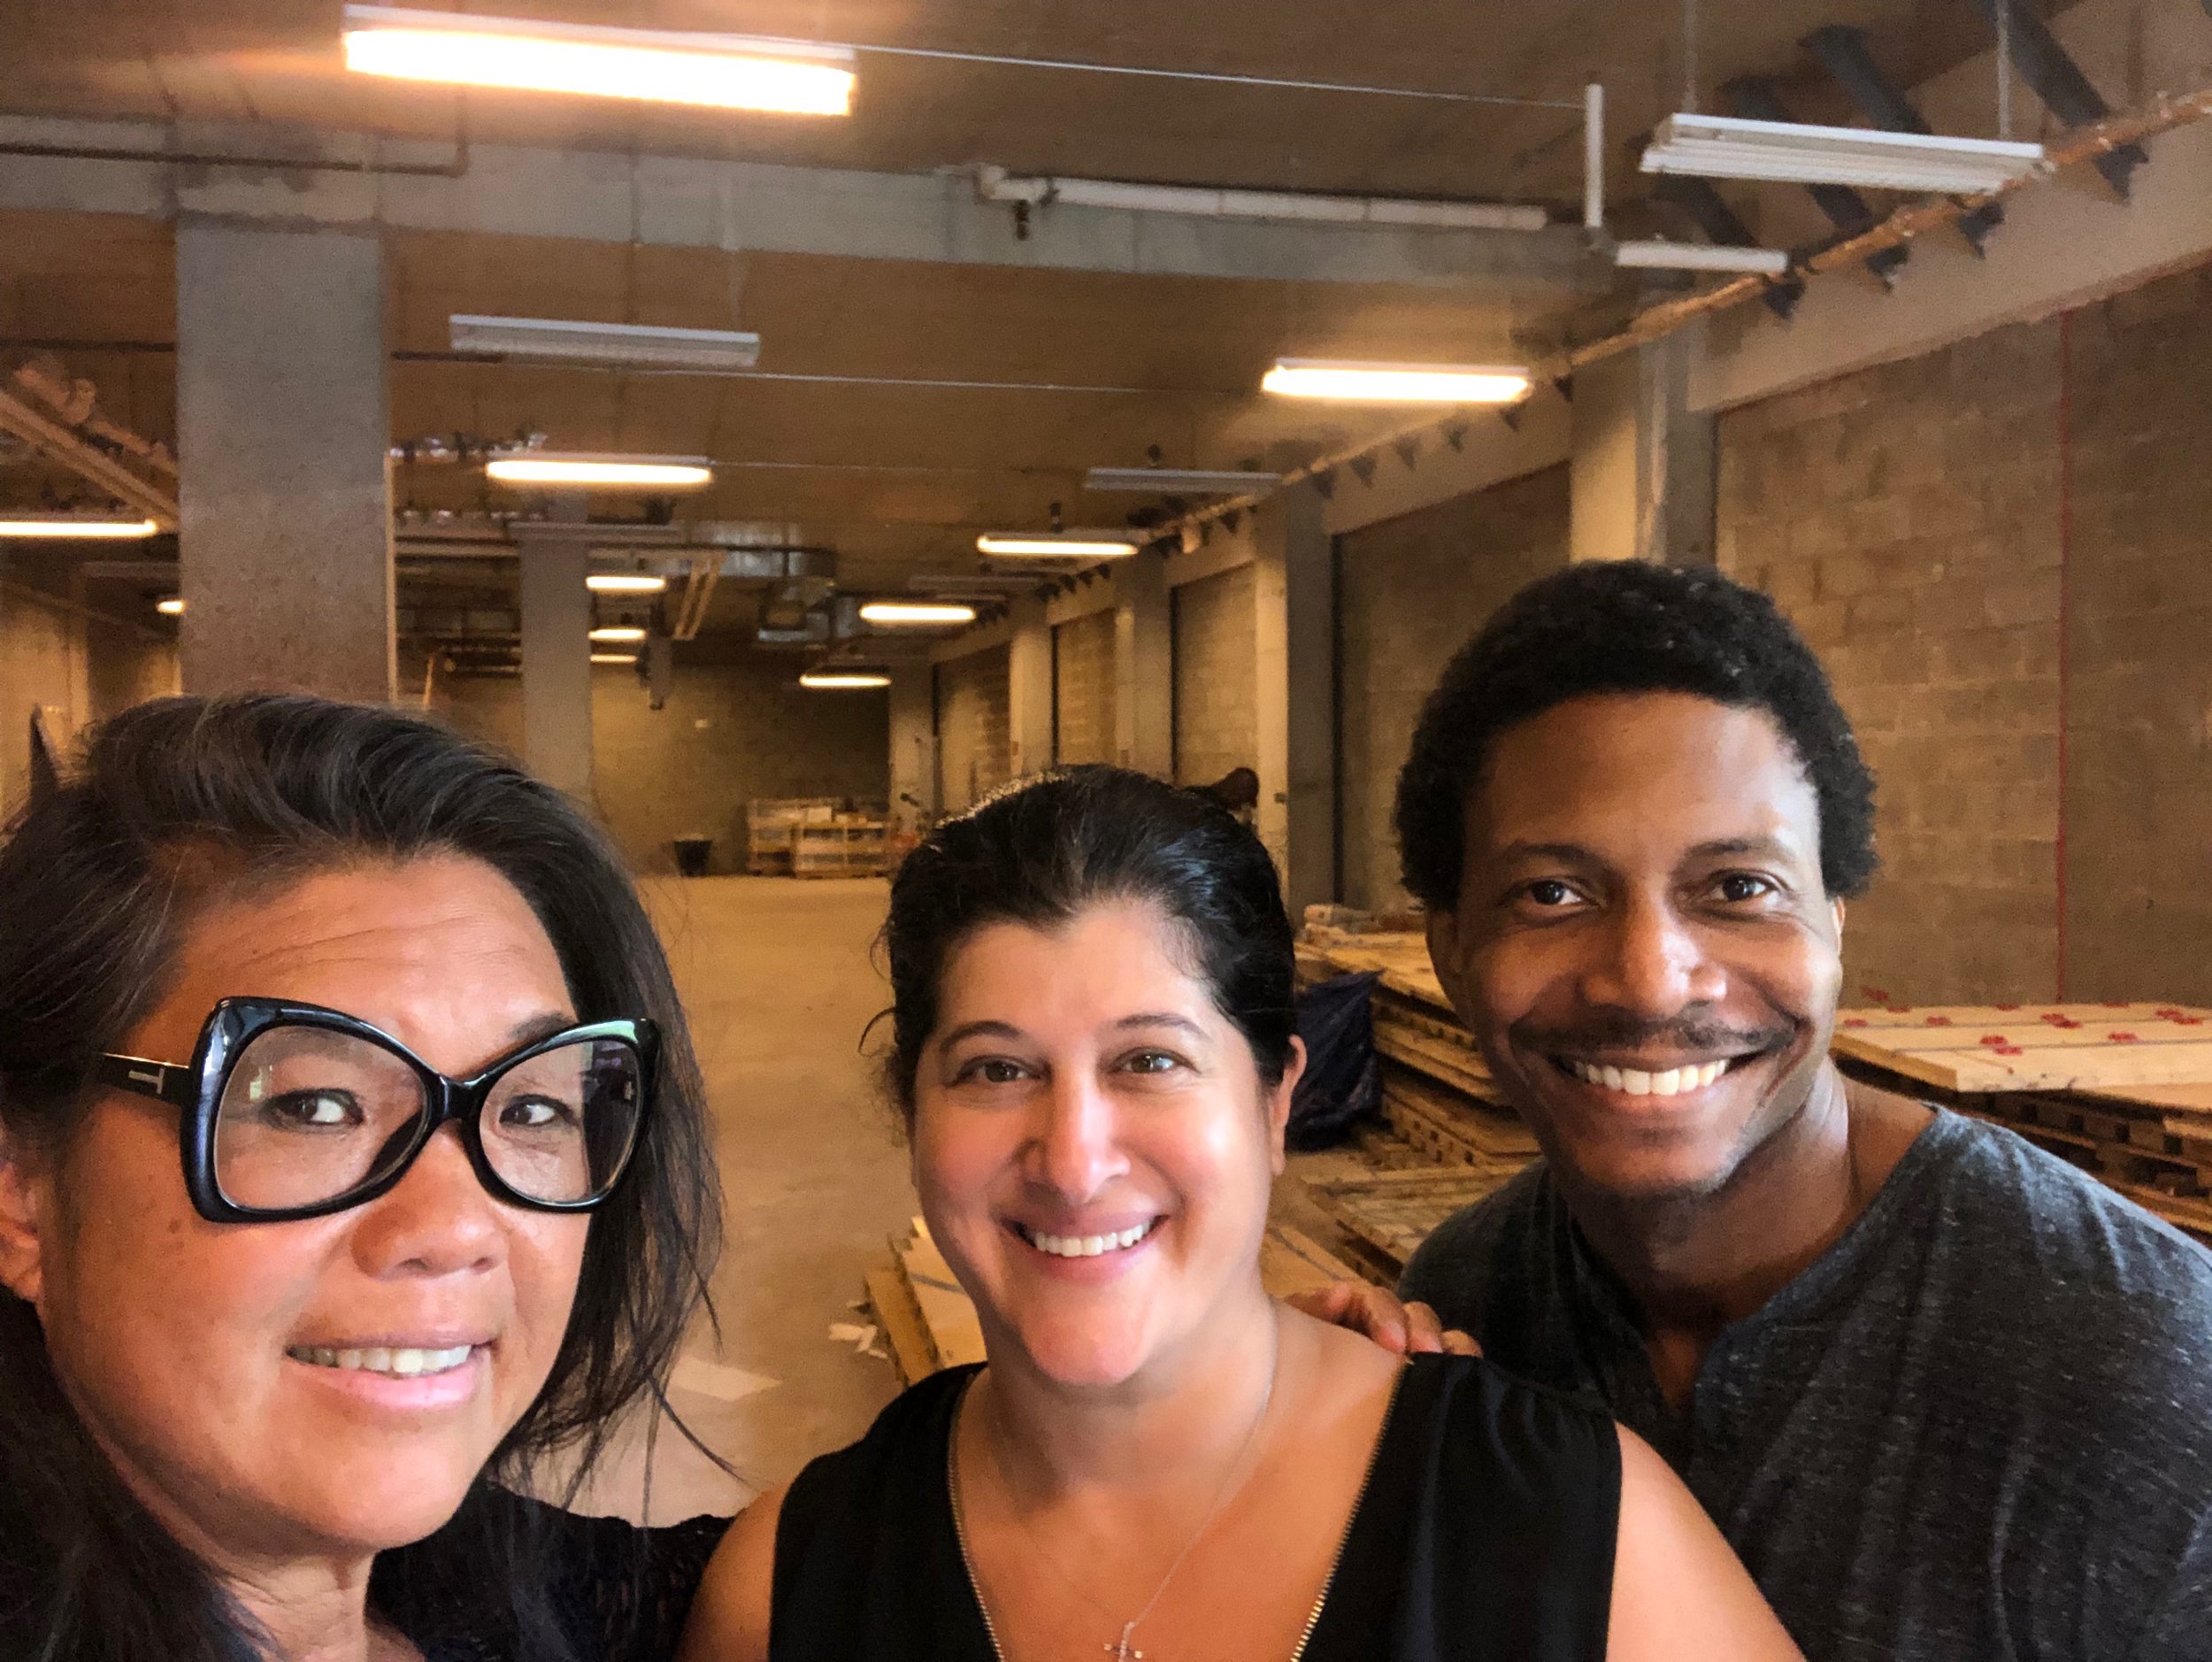 Me, Gianna and Masud in our new space